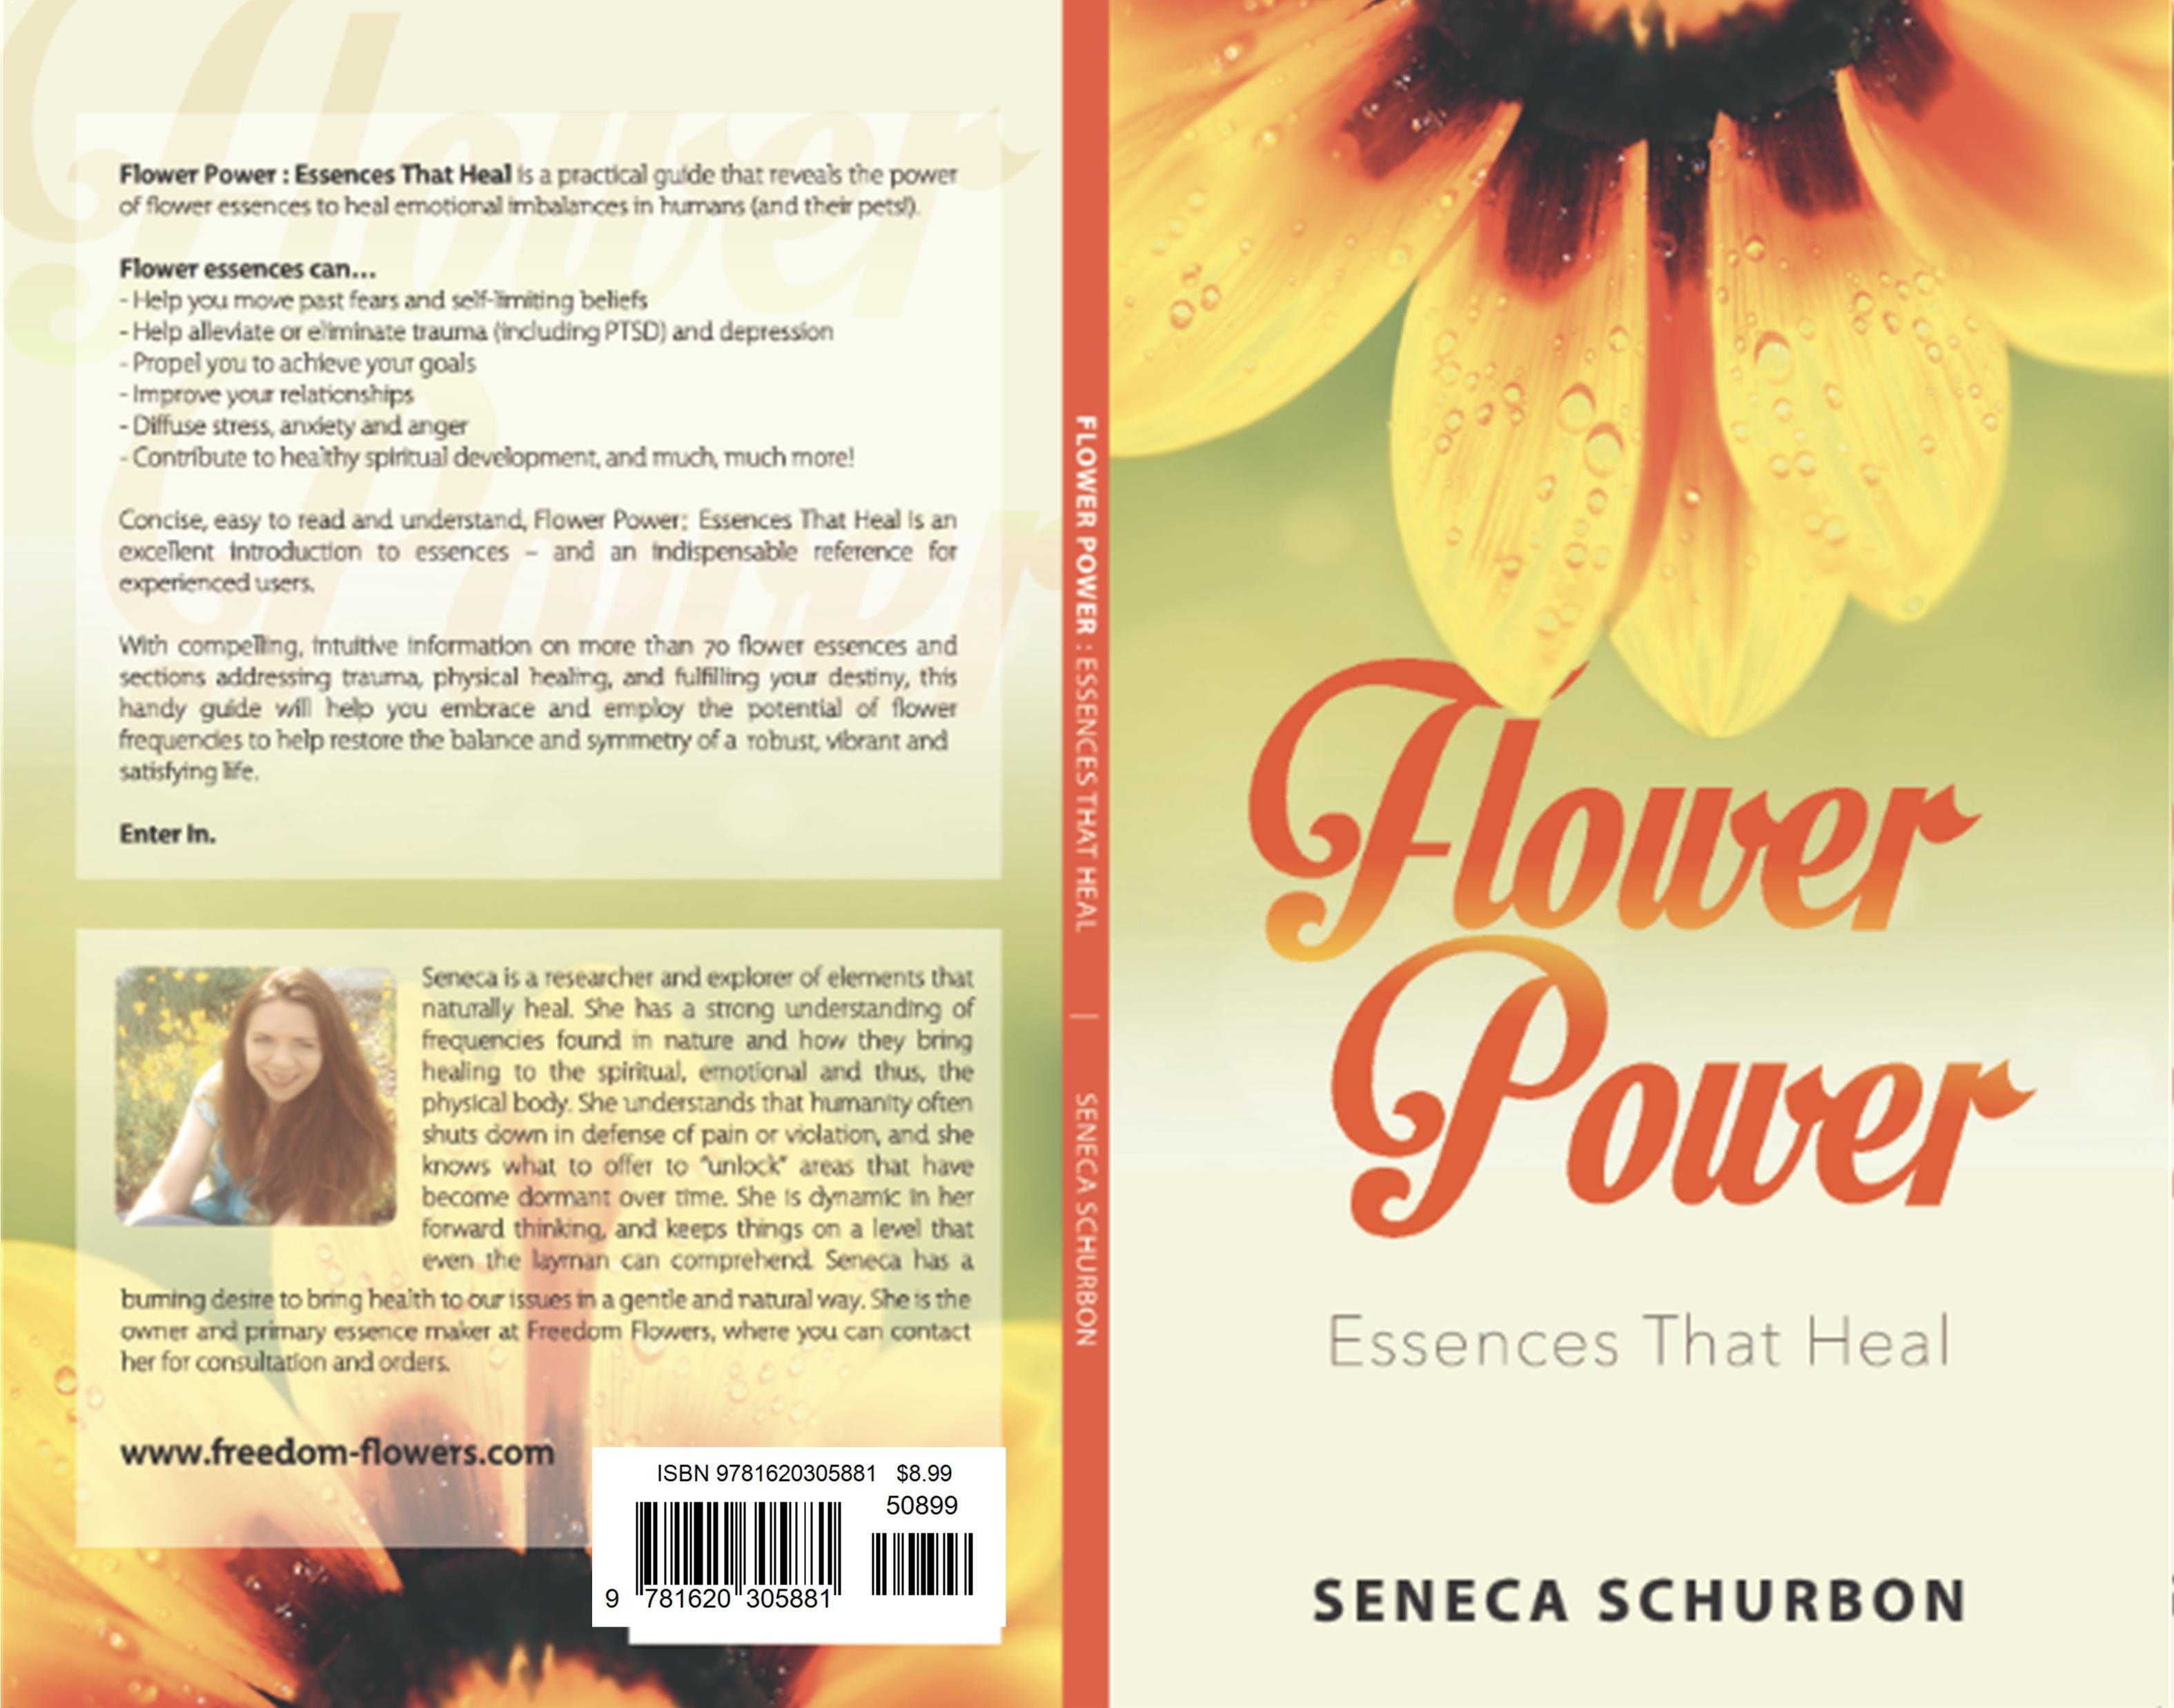 Flower Power Essences That Heal cover image